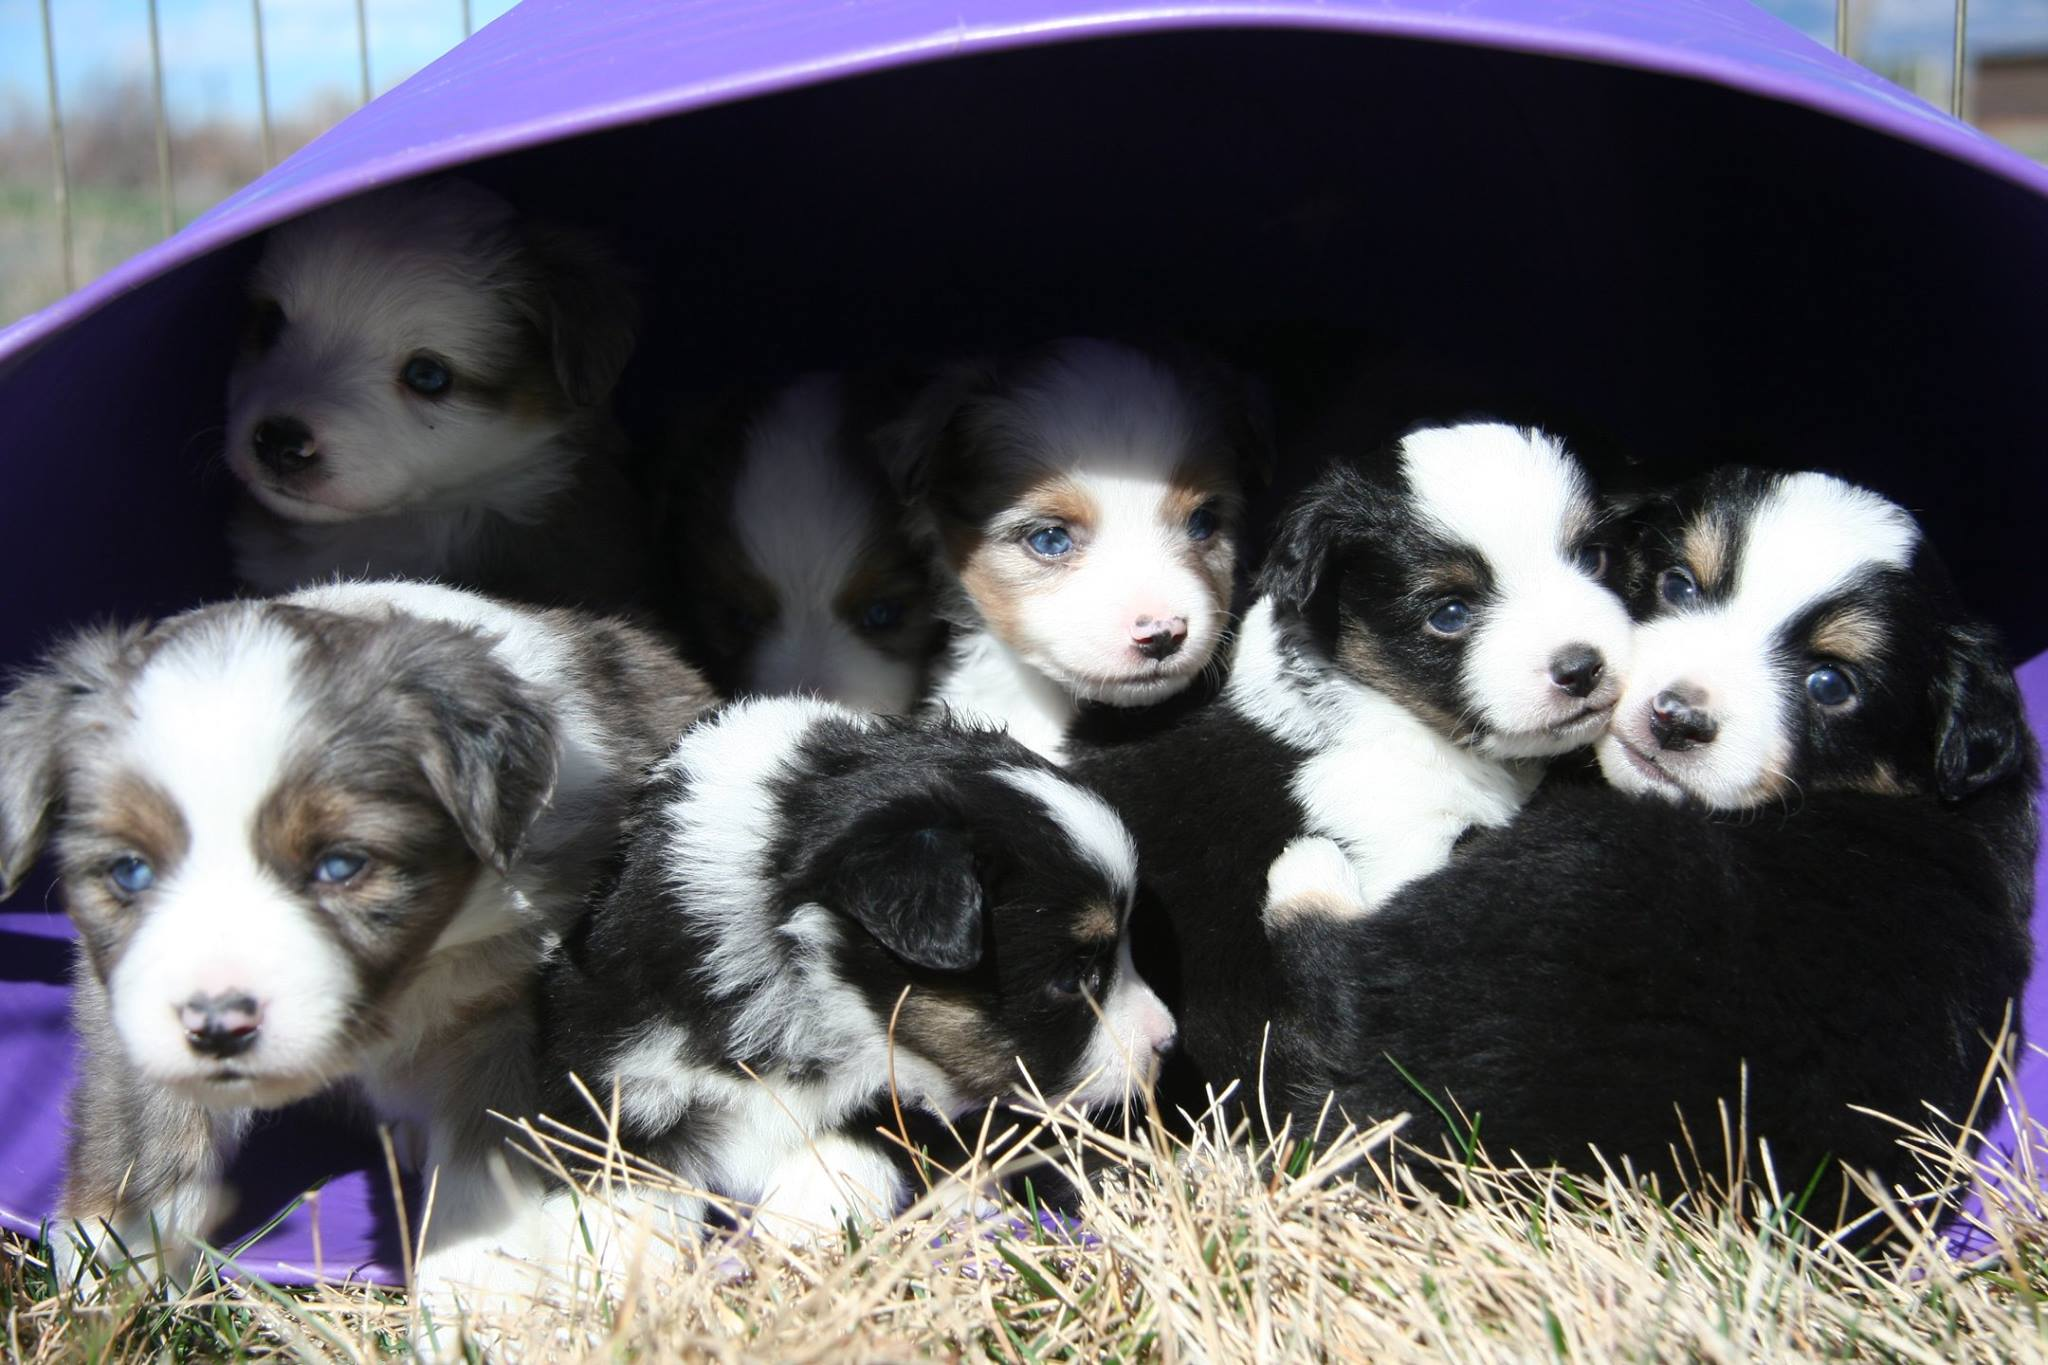 Puppies Do Love to Be in Buckets!